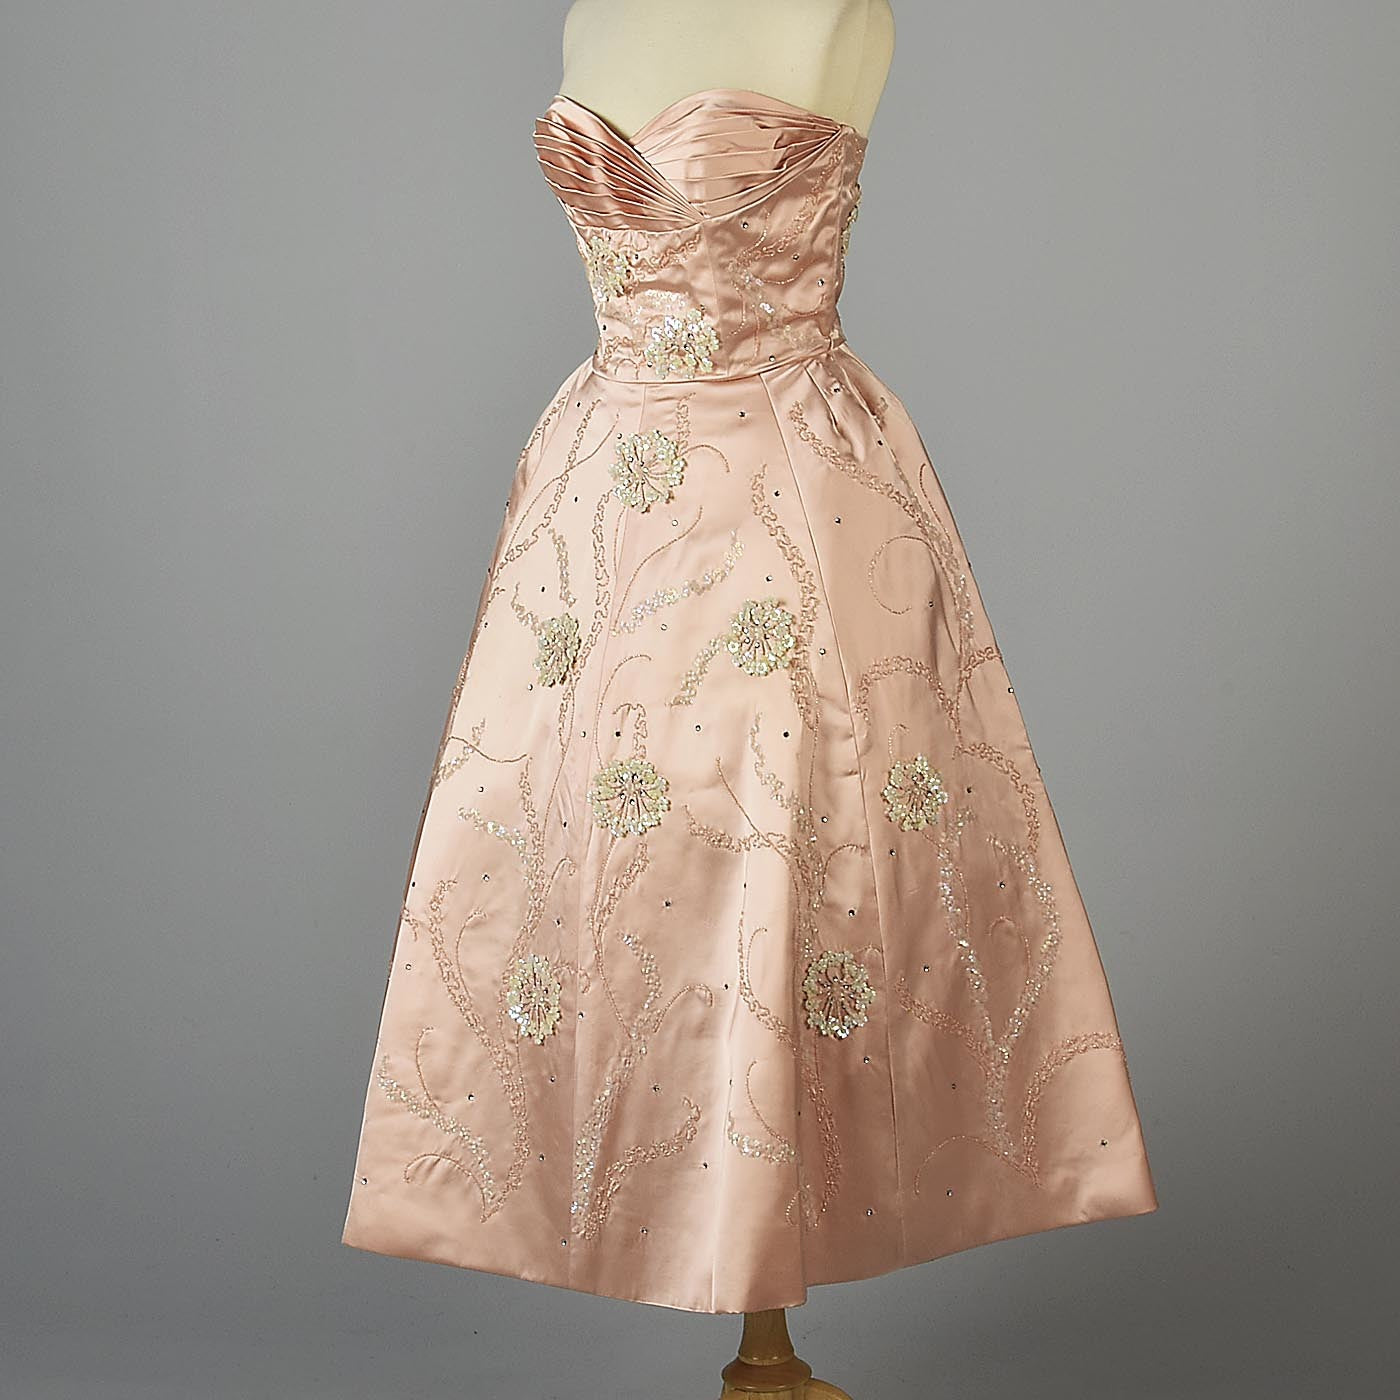 1950s Pink Silk Satin Gown with Three Dimensional Beading from Marshall Field's 28 Shop